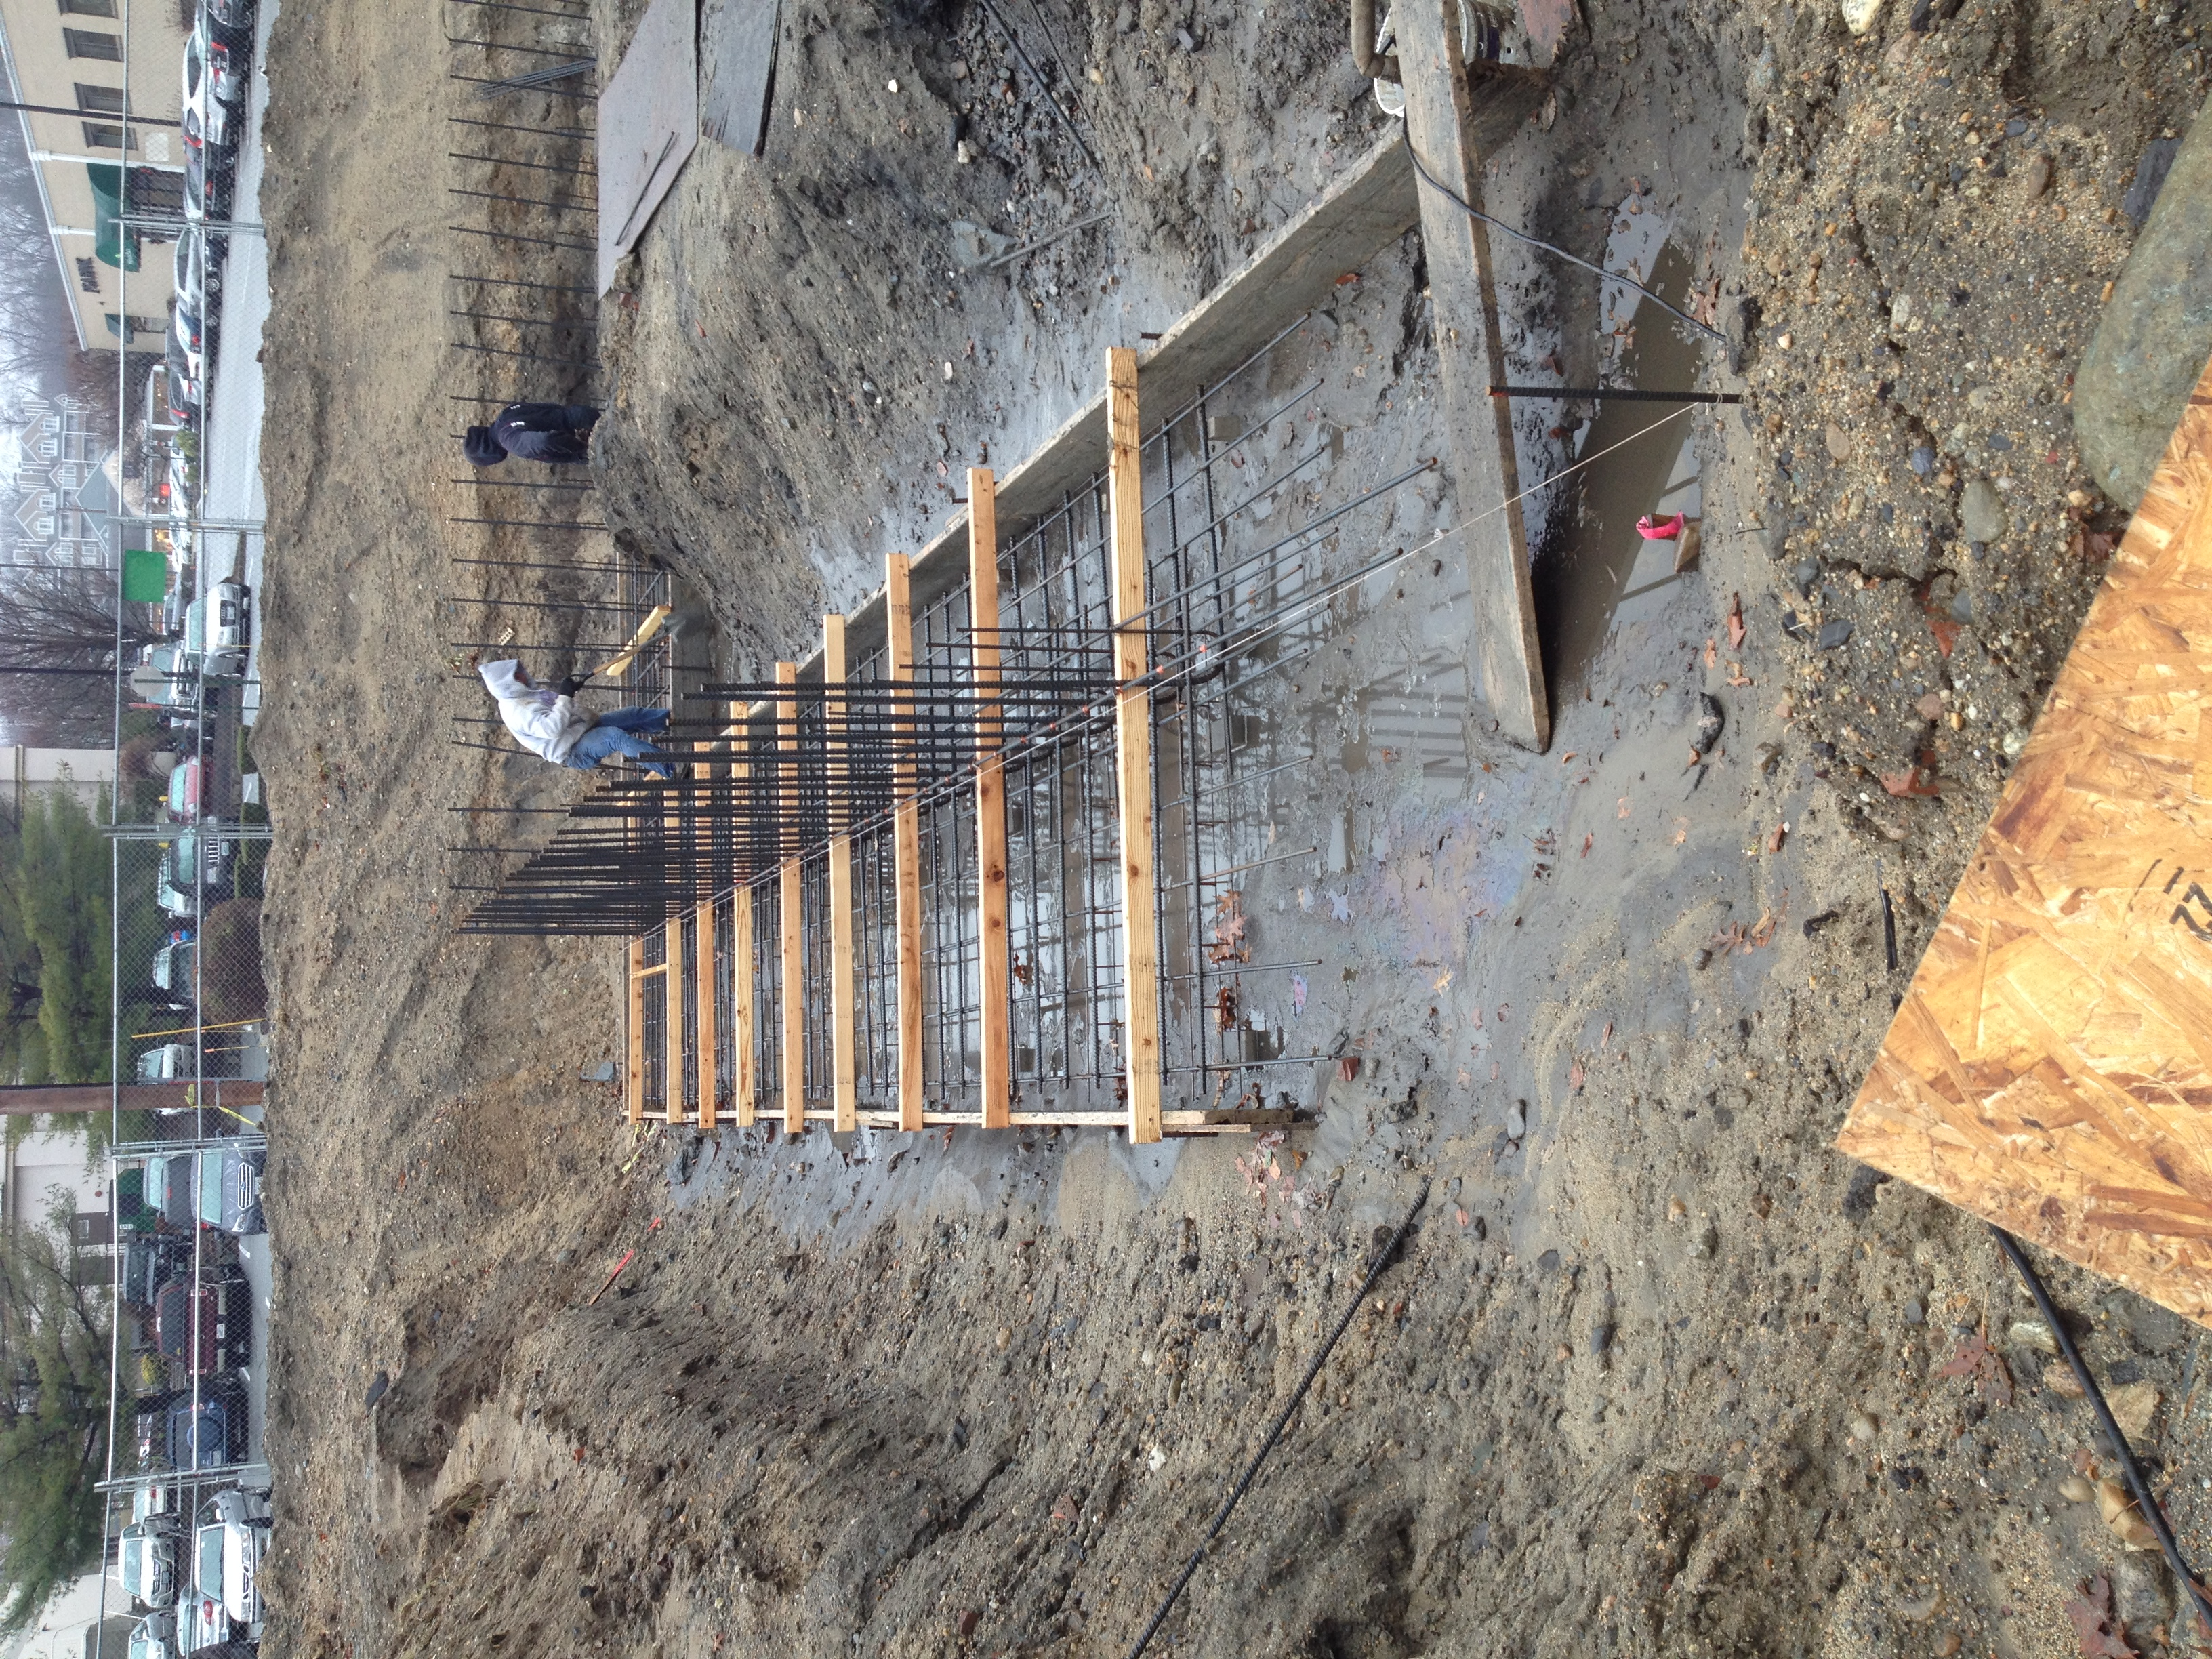 Rebar and forms for the foundations at 125 Midway